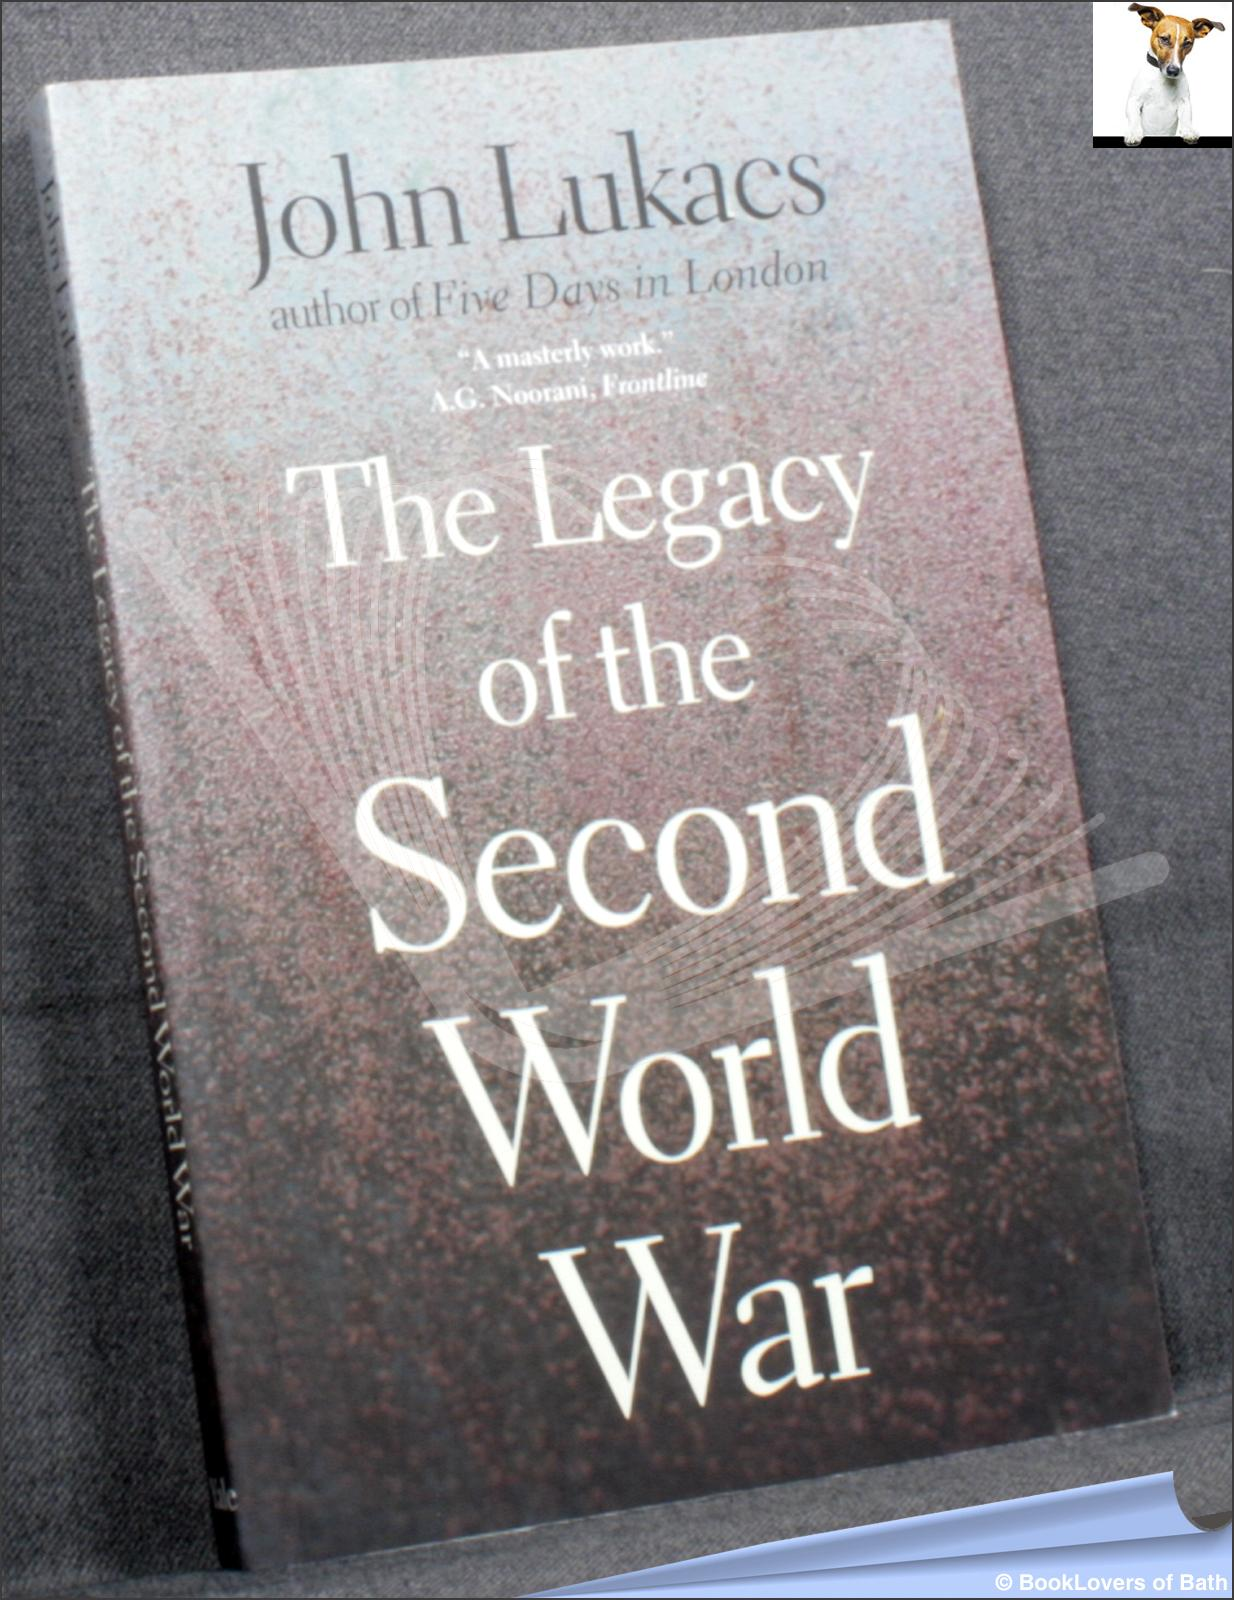 The Legacy of the Second World War - John Lukacs